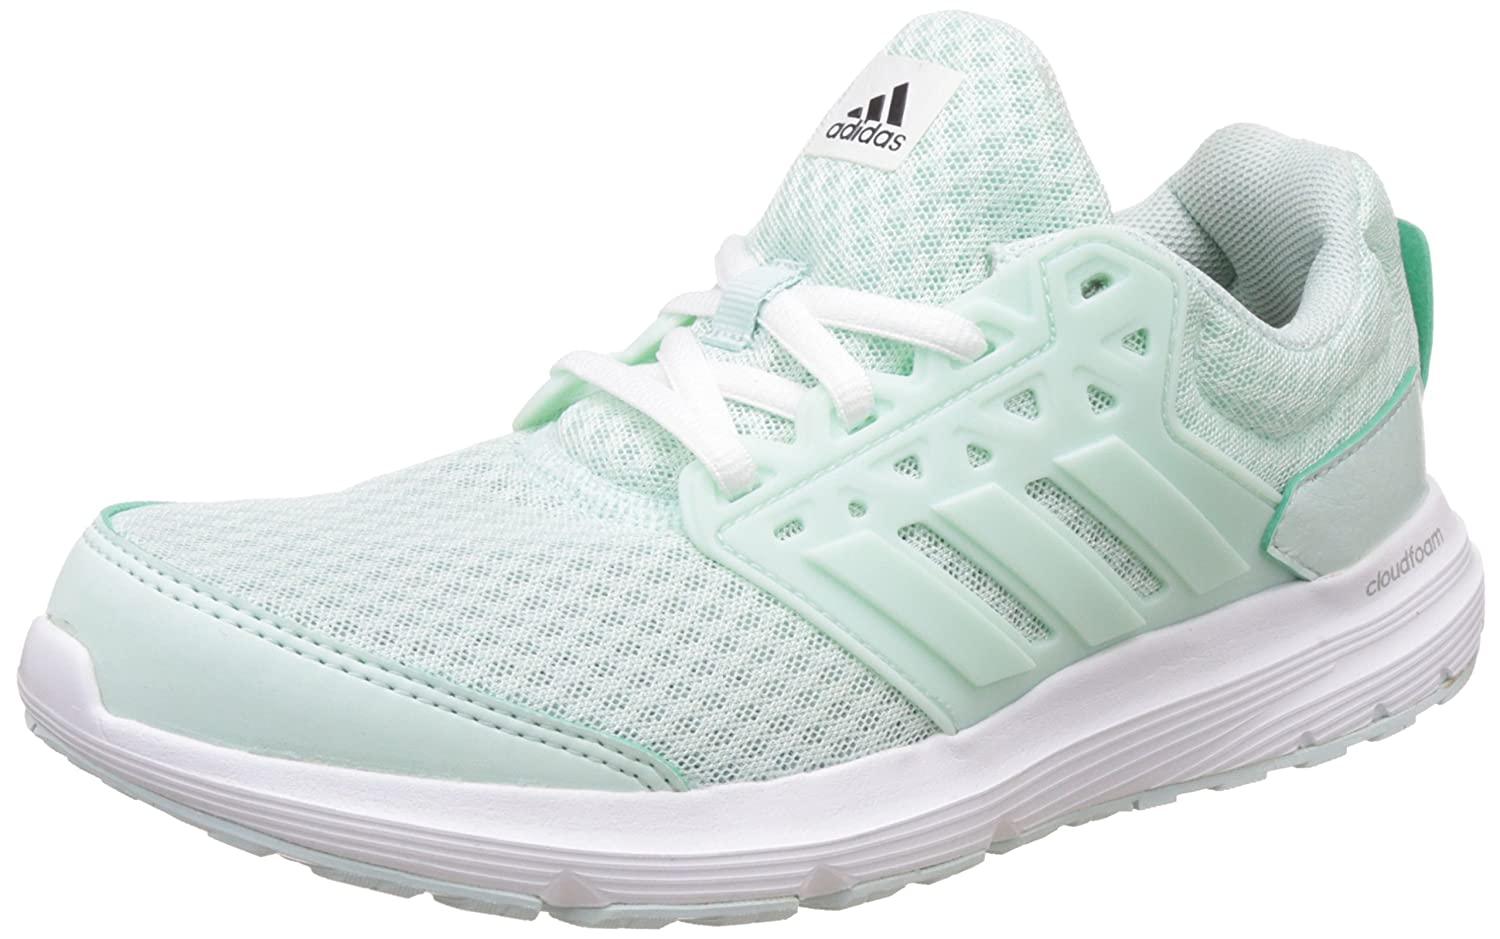 on sale e66fe 8278c Amazon.com  adidas Galaxy 3 W Cloudfoam Ortholite Womens Shoes Running   Road Running